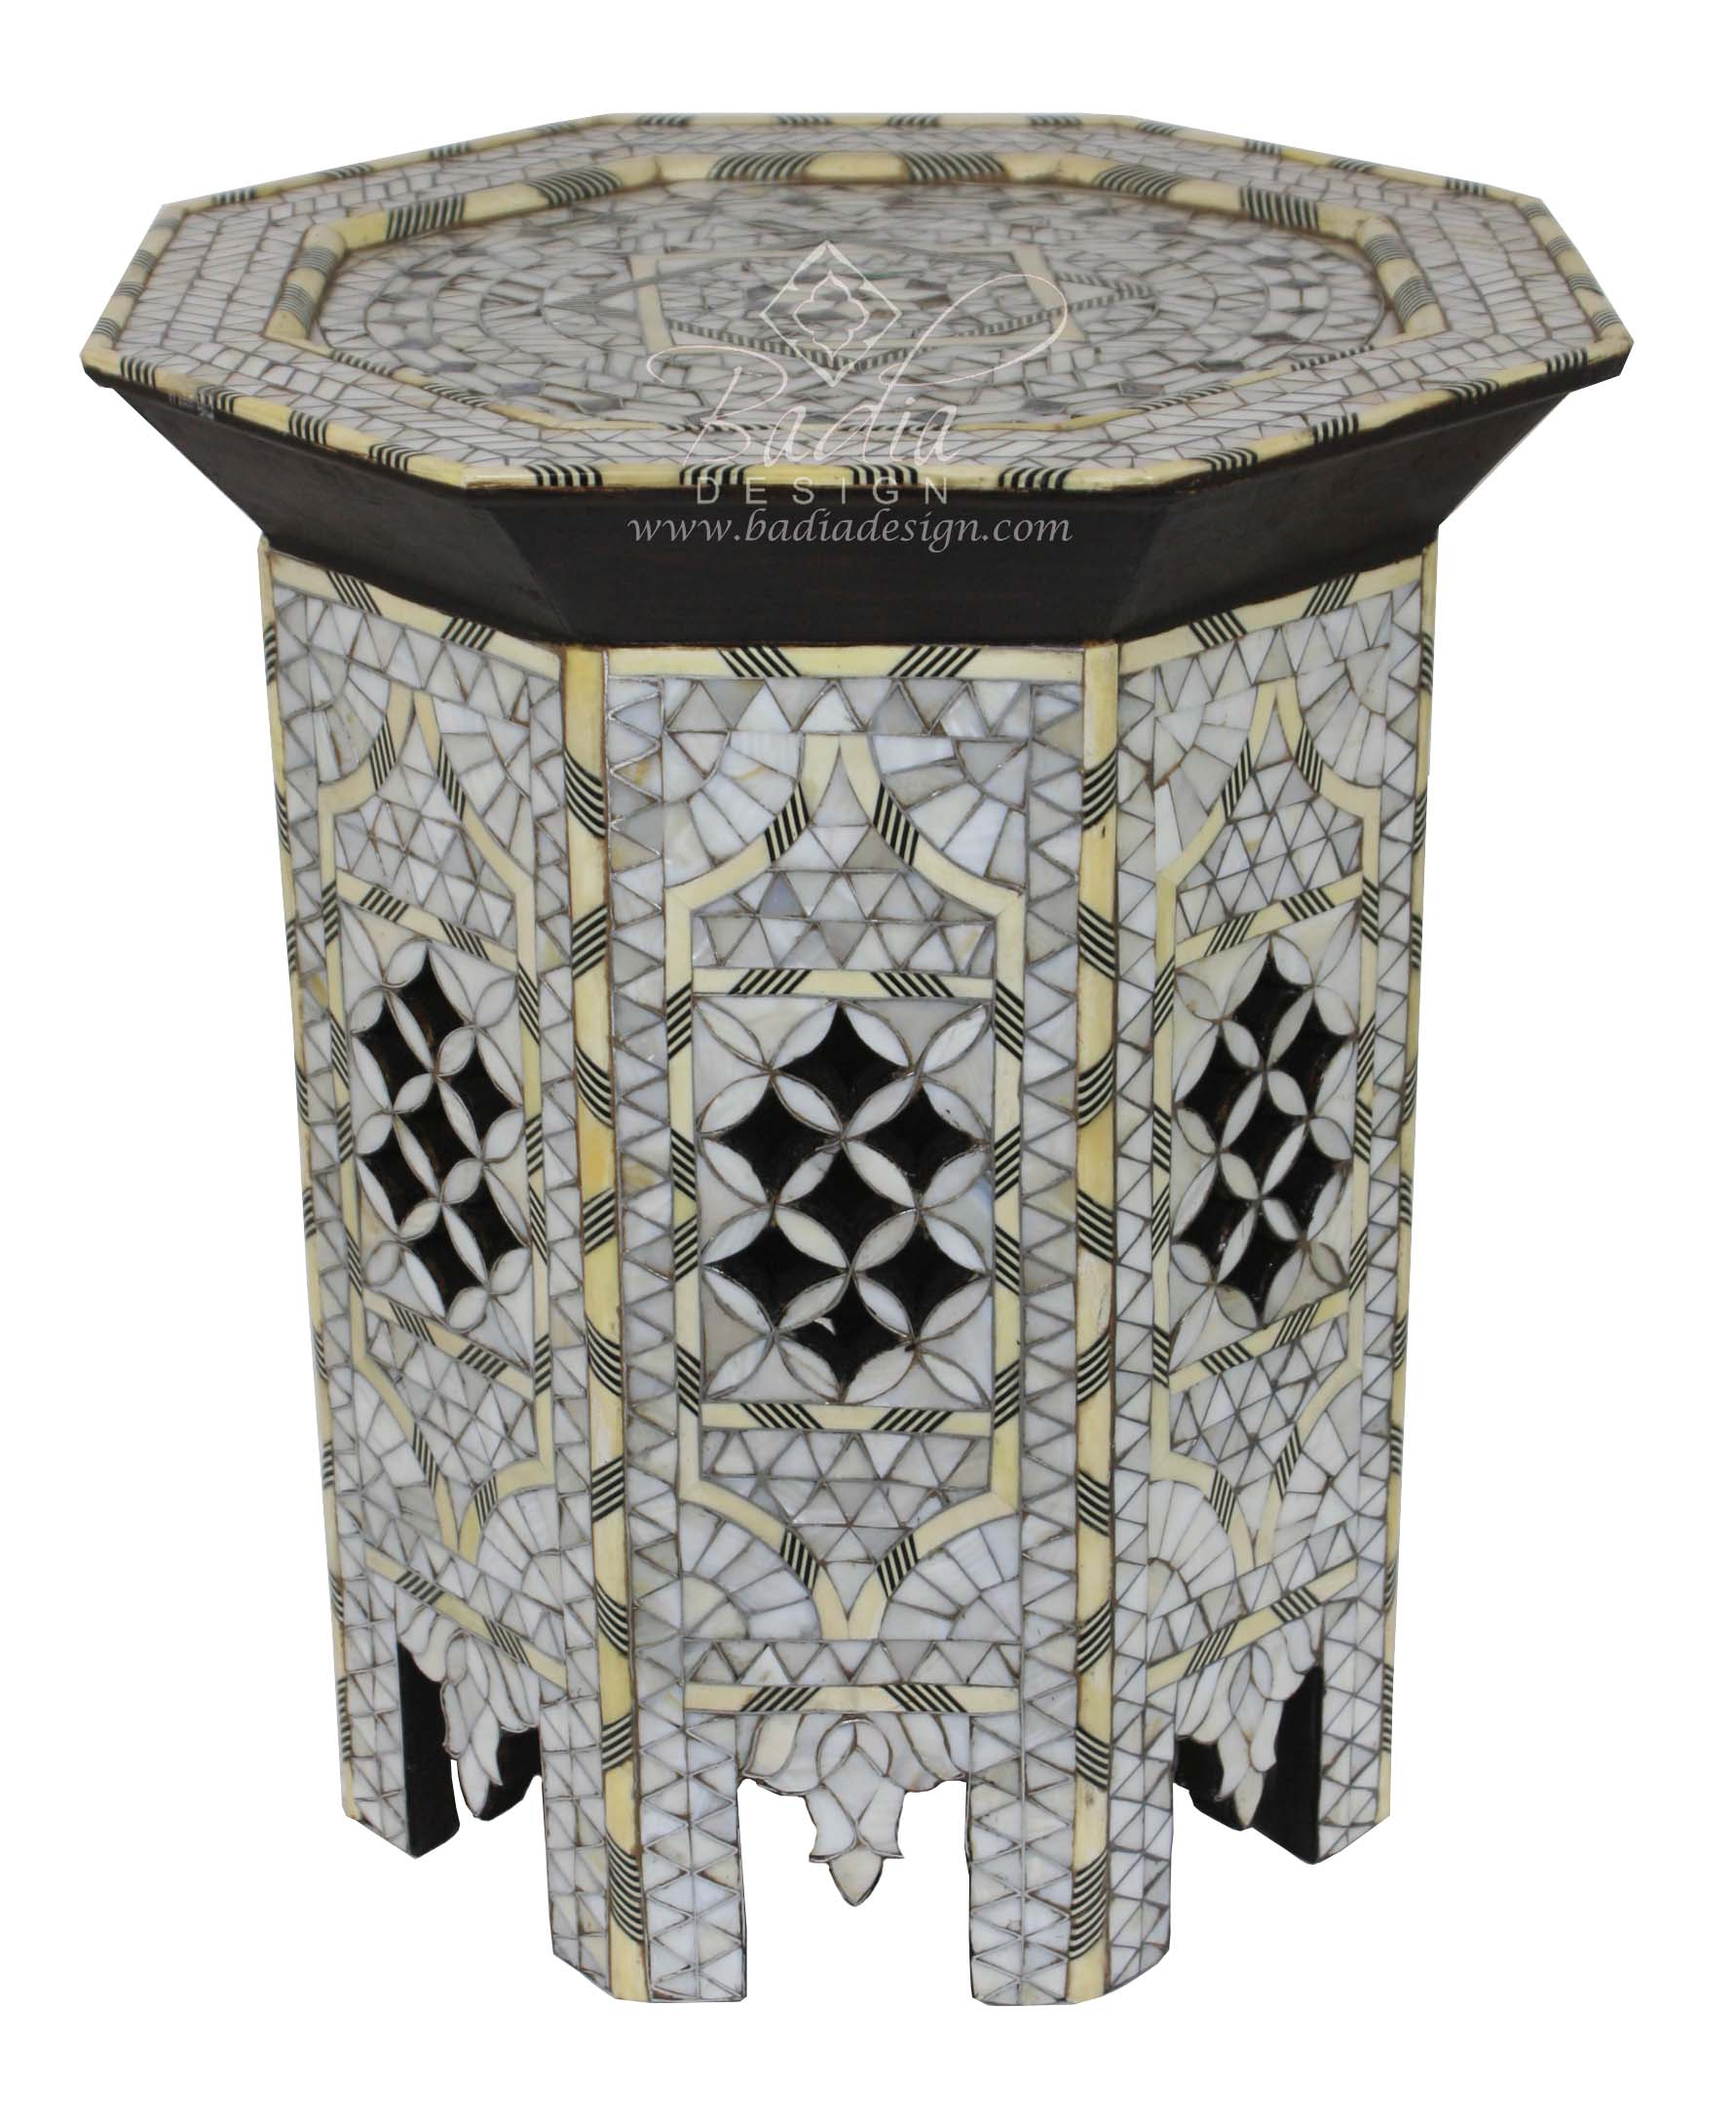 moroccan-white-mother-of-pearl-table-mop-st088-1.jpg